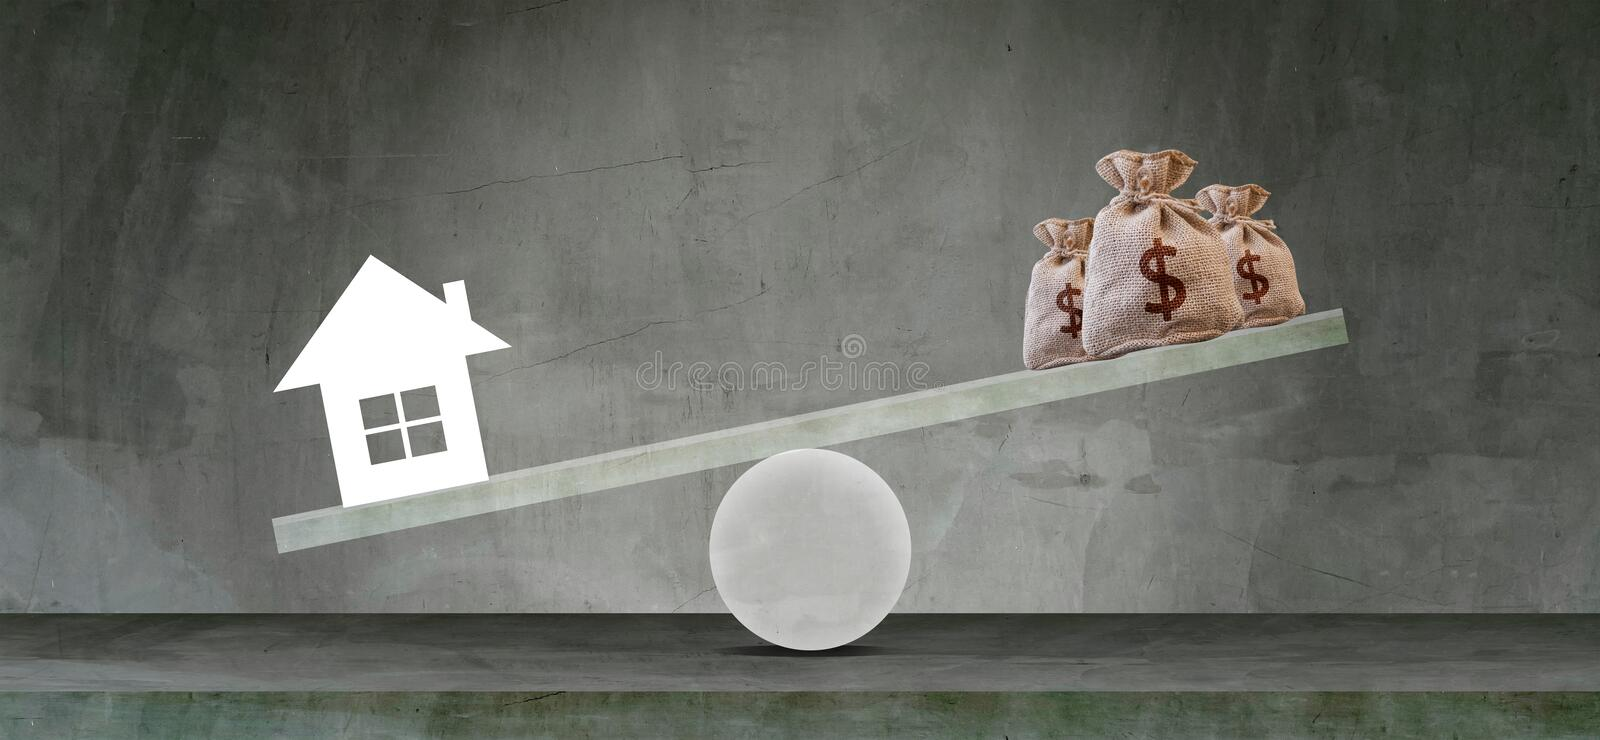 Housing loan market Sample houses and balance piggy bank on the seesaw Real estate concepts,Personal income imbalance stock image